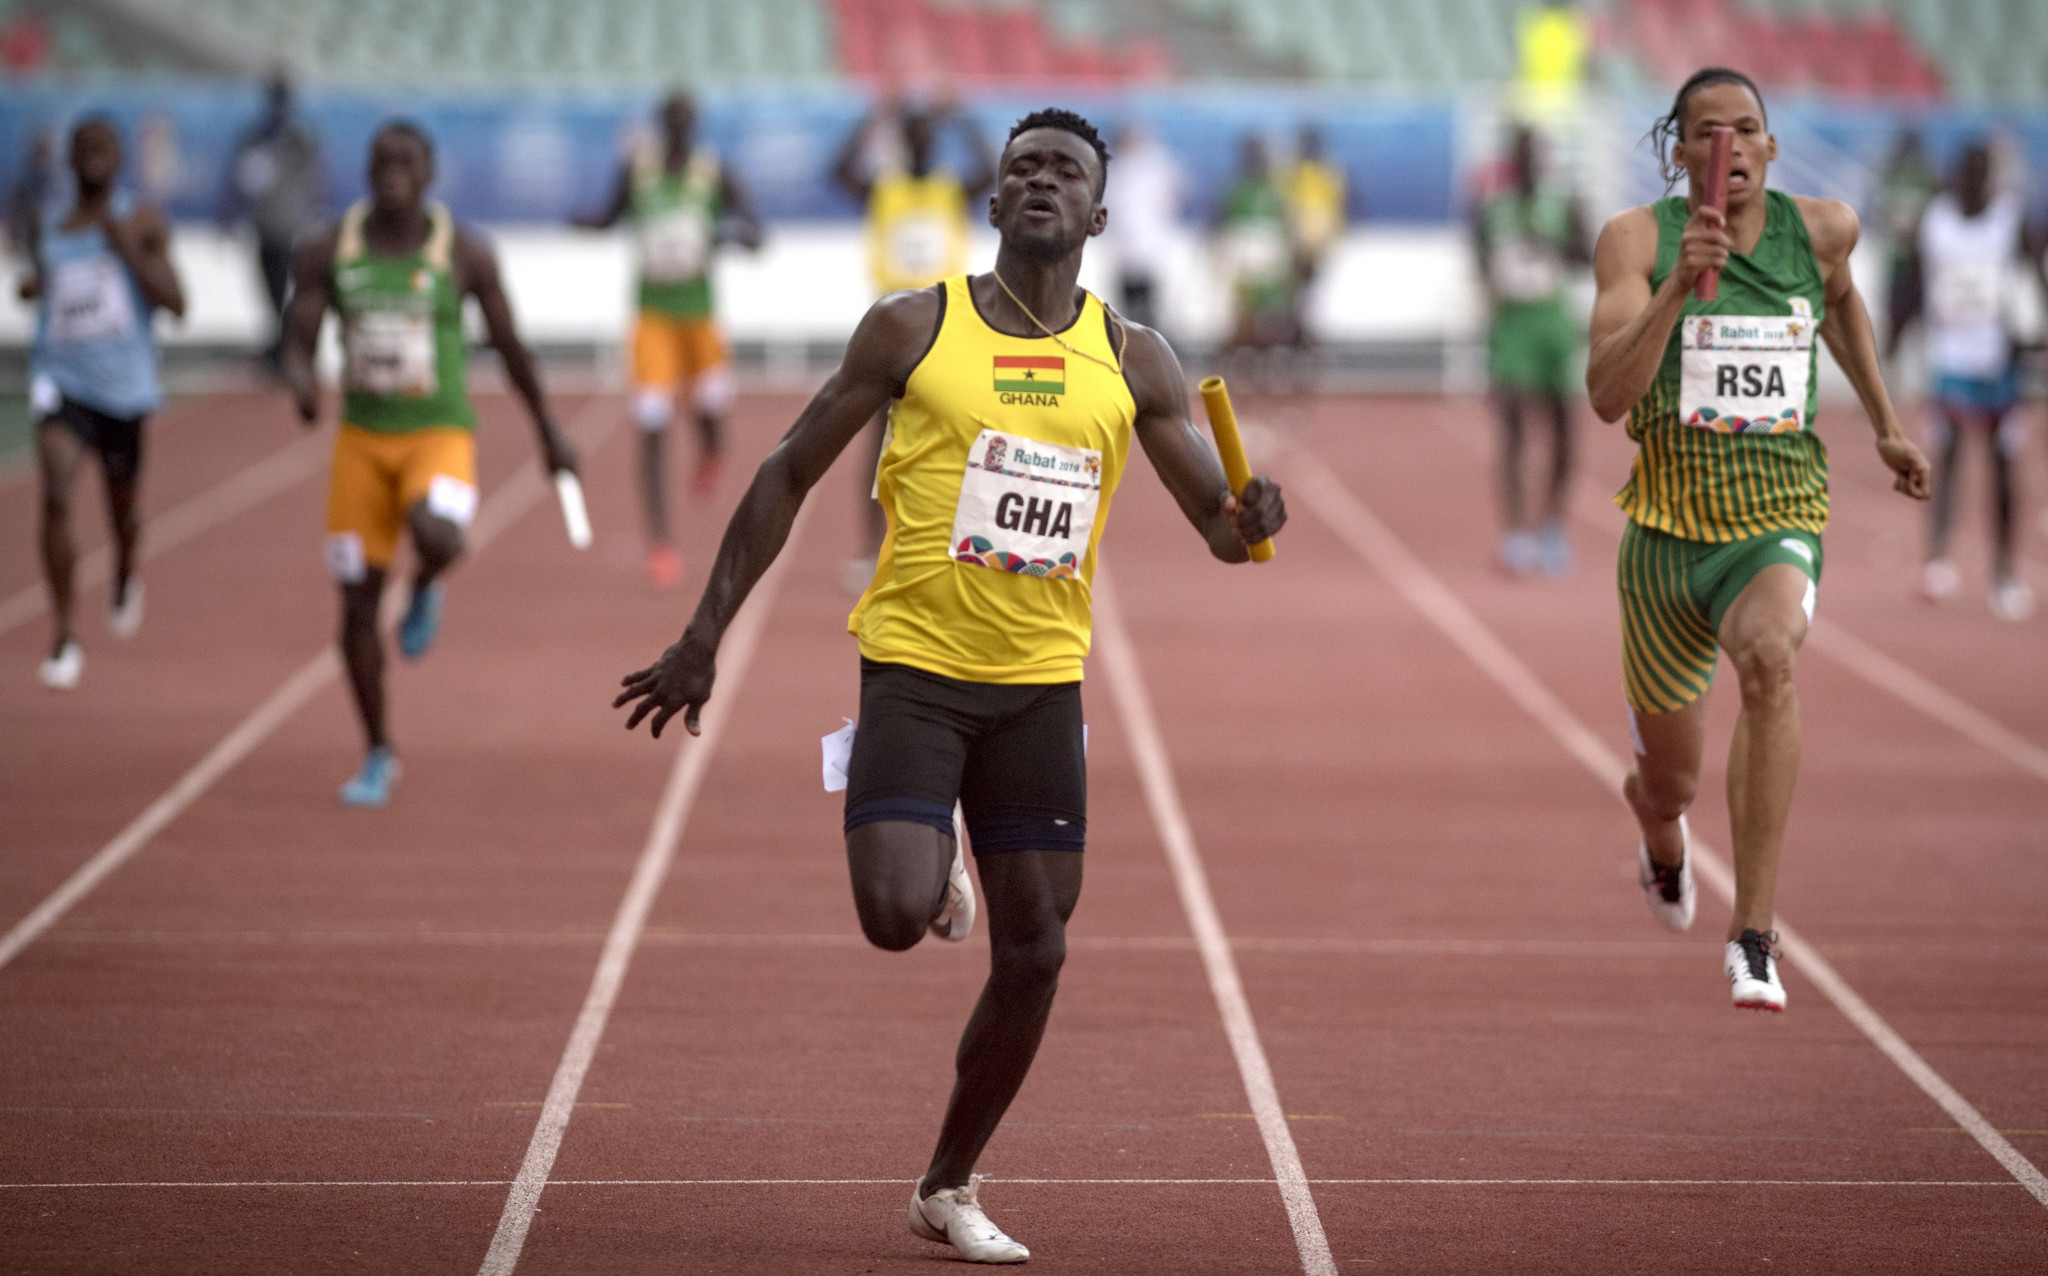 Turkey in line to help Ghana with preparations for home African Games